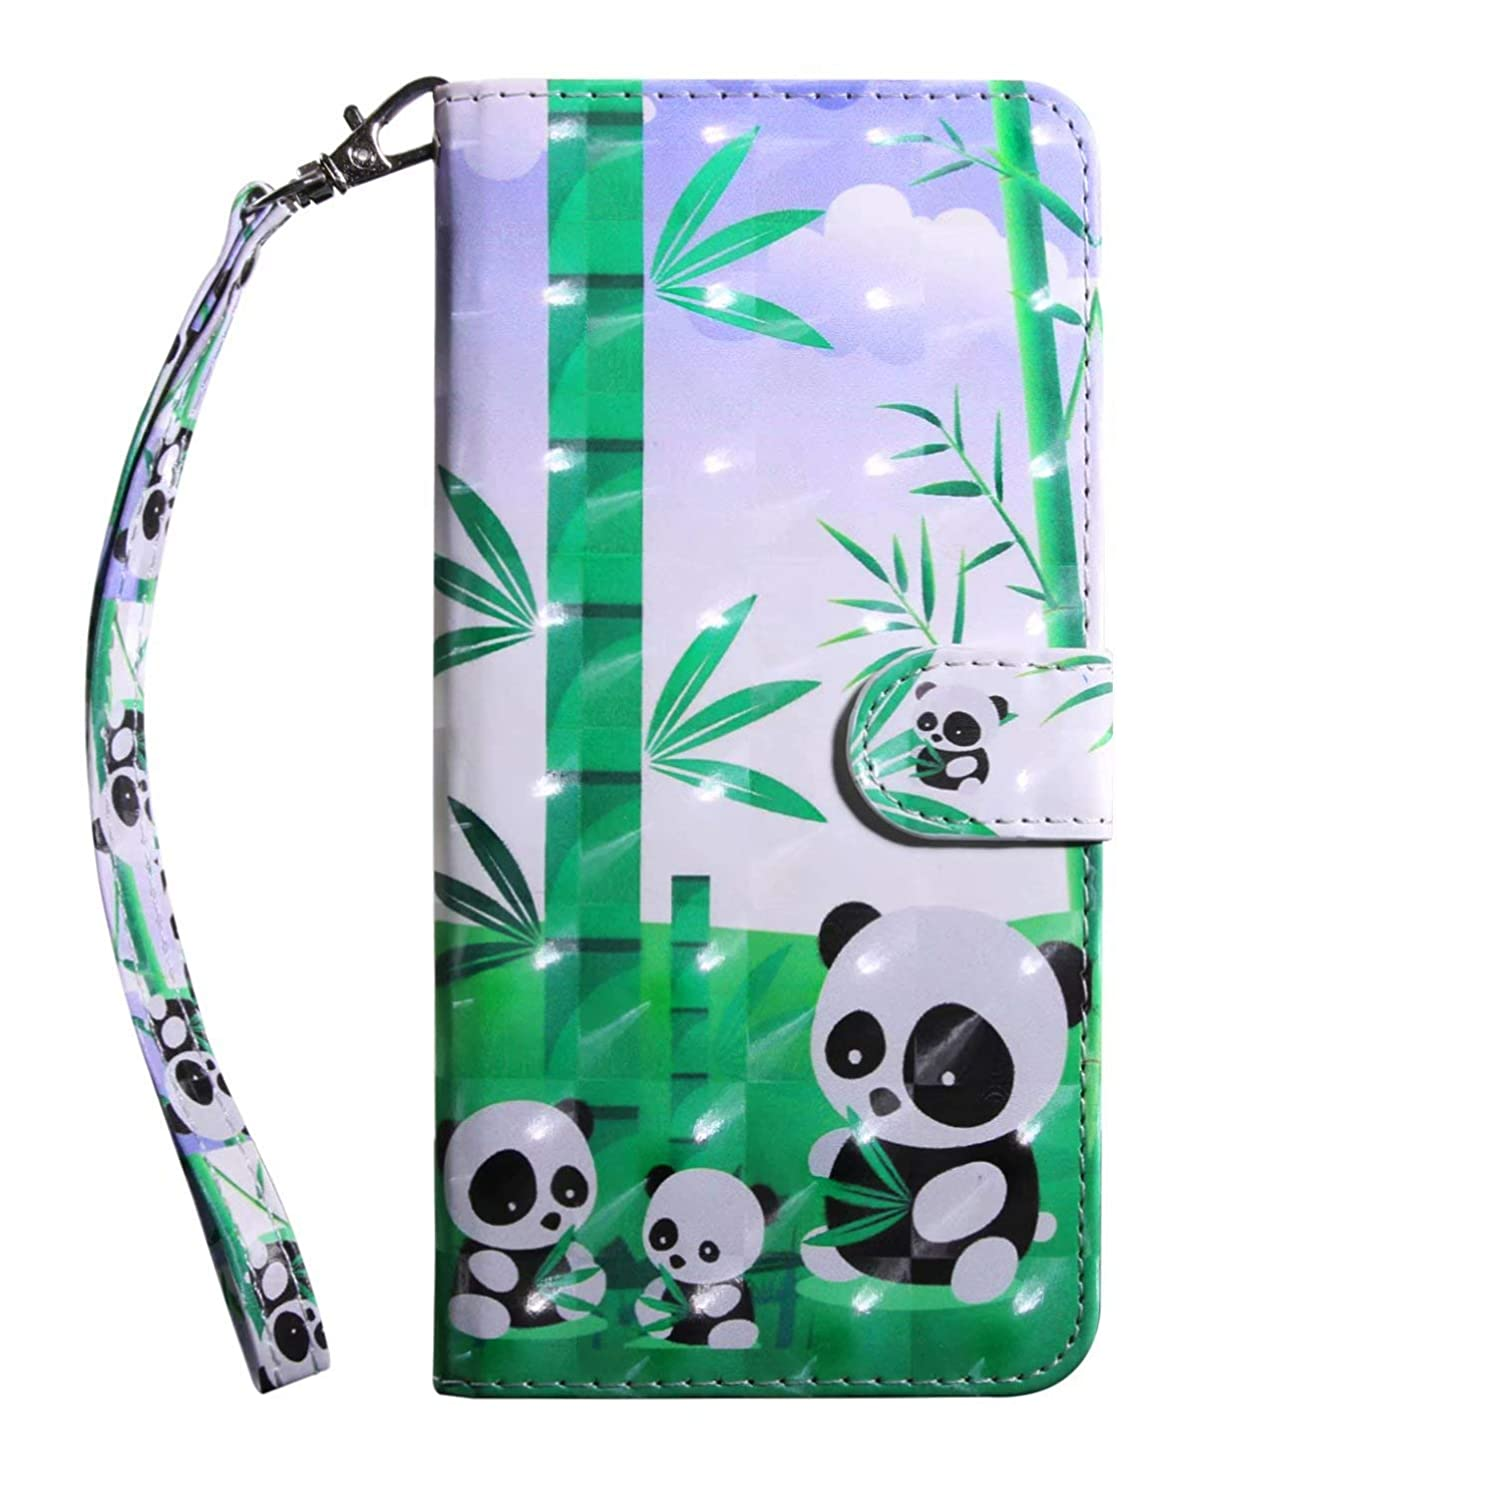 Galaxy S9 Case, AIIYG DS 3D Pattern [Kickstand Feature] Flip Folio Leather Wallet Case with Lanyard ID and Credit Card Pockets for Samsung Galaxy S9,Panda